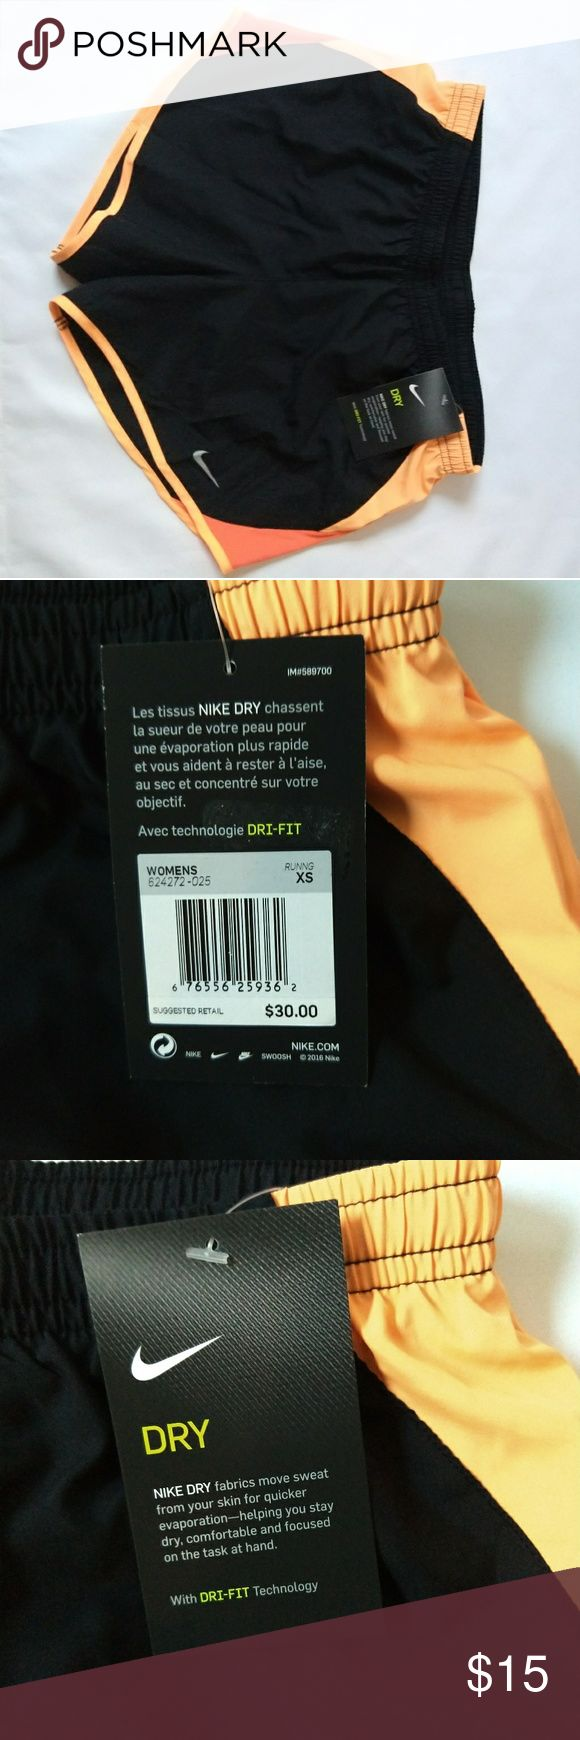 Nike dri-fit running shorts Extra-small Dri-Fit black and orange running shorts, new with tags never worn Nike Shorts